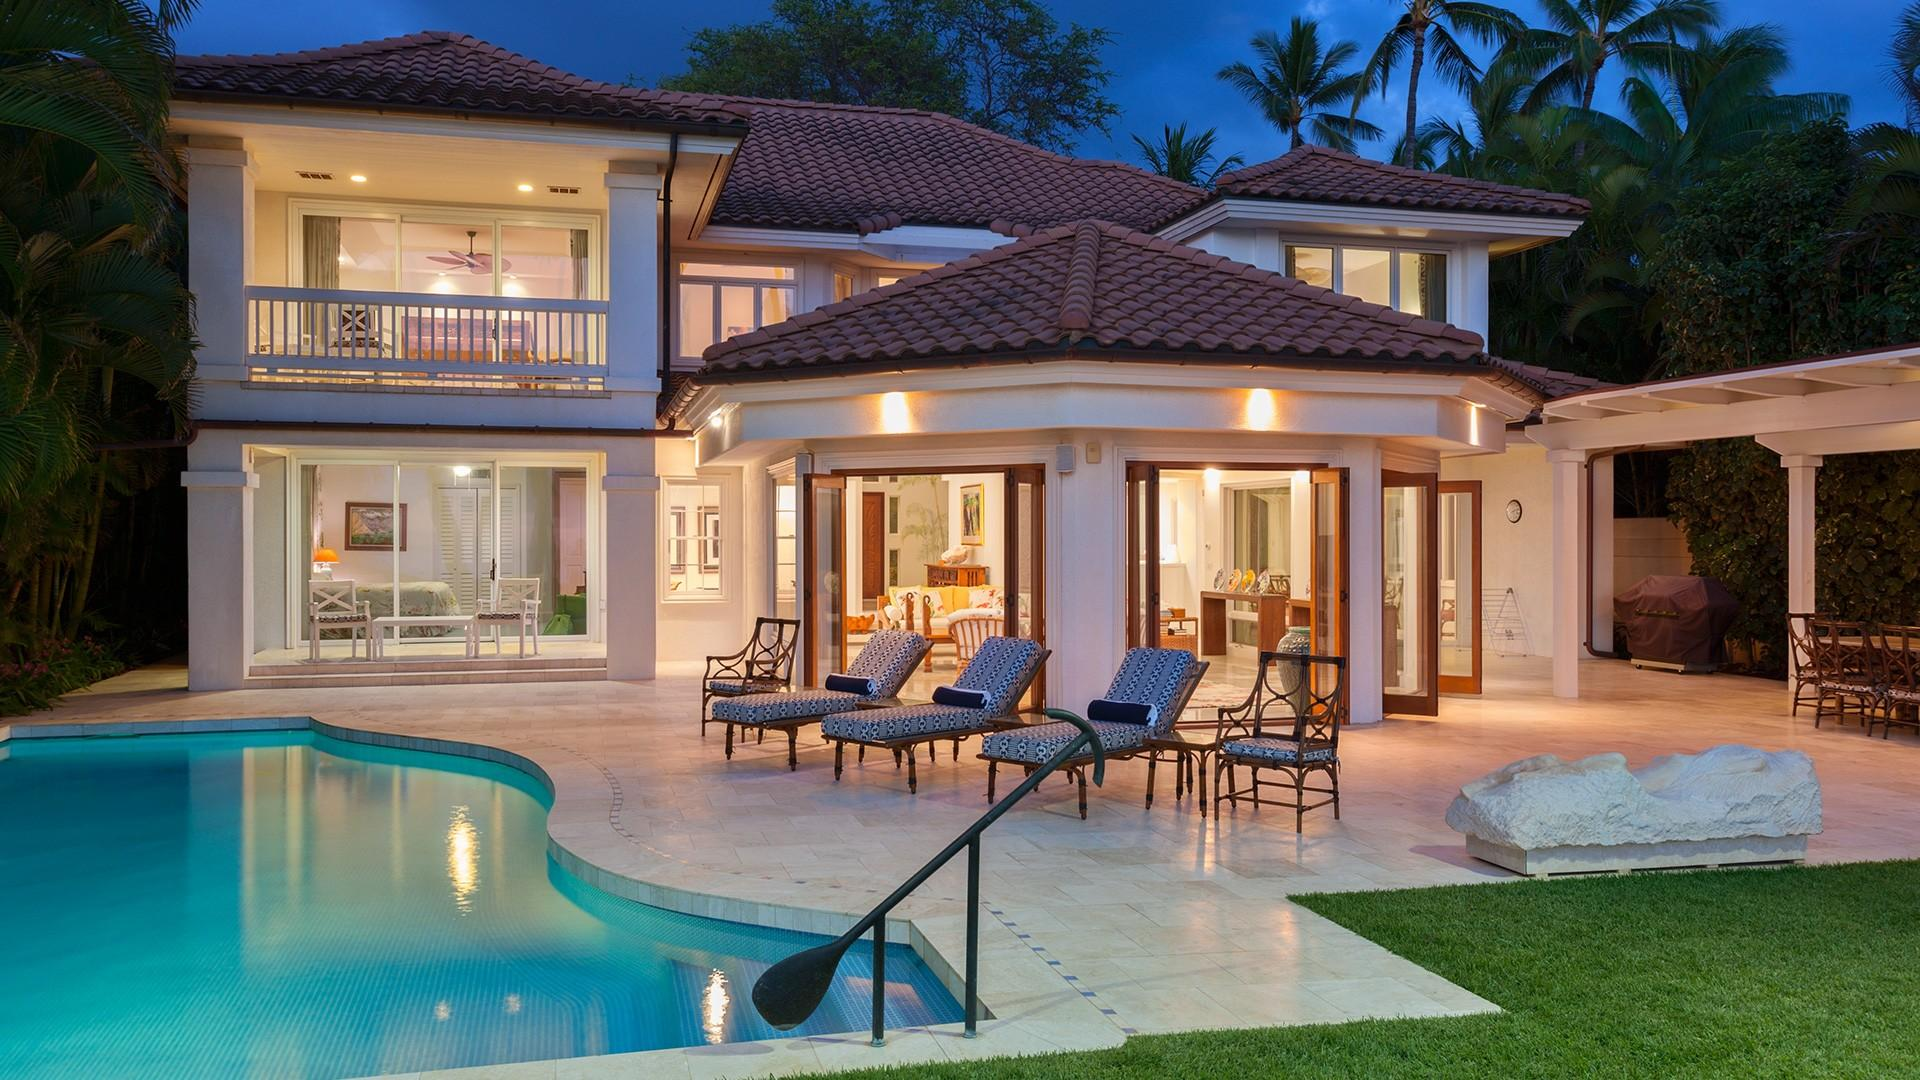 This elegant estate provides the perfect setting for your family's vacation in paradise.